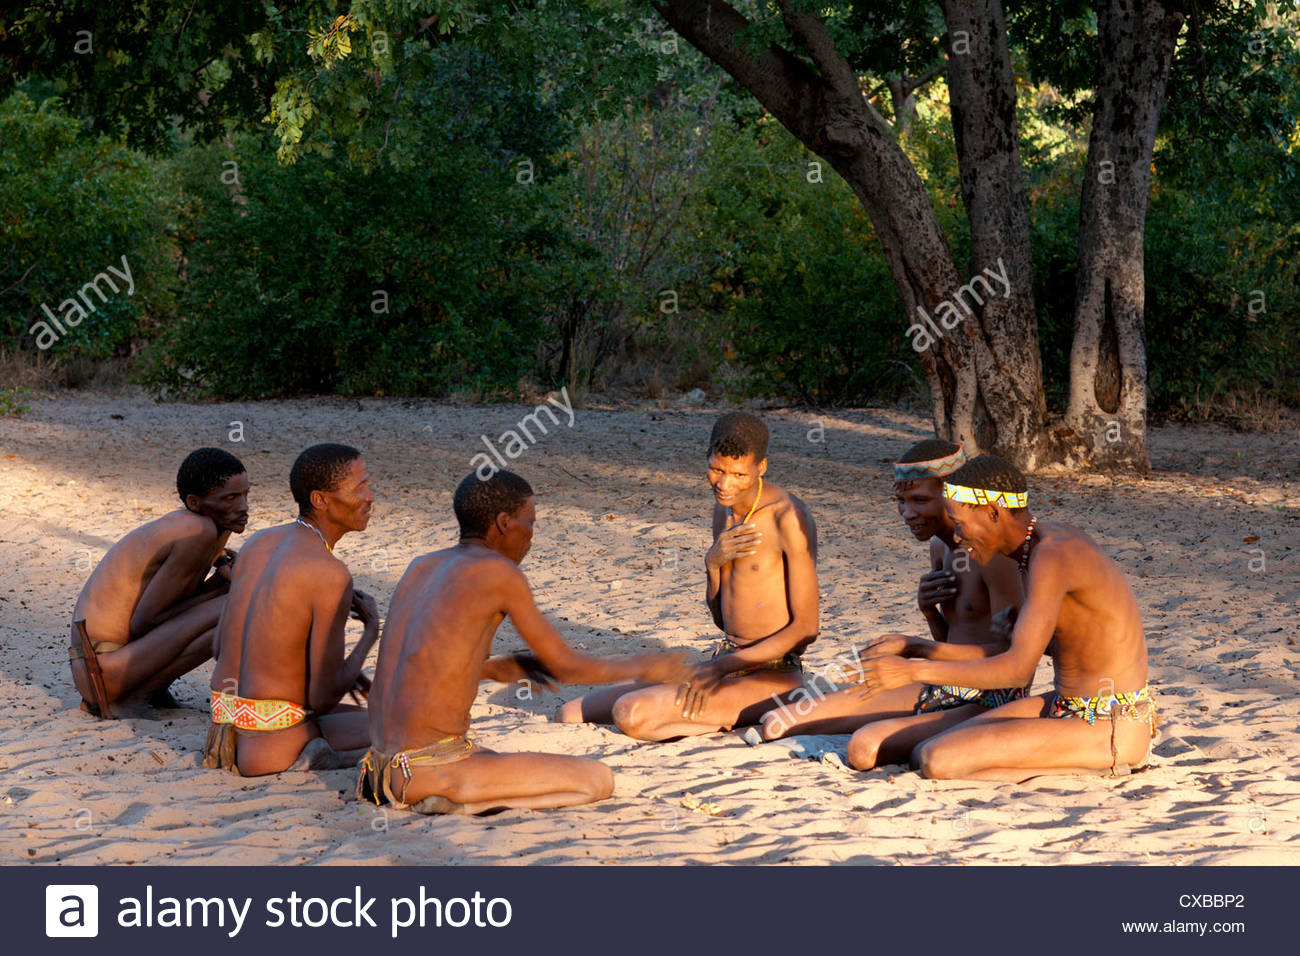 Jul'hoan !Kung Bushman sitting in sand playing a traditional game, Bushmanland, Kalahari Desert, Namibia, Africa - Stock Image